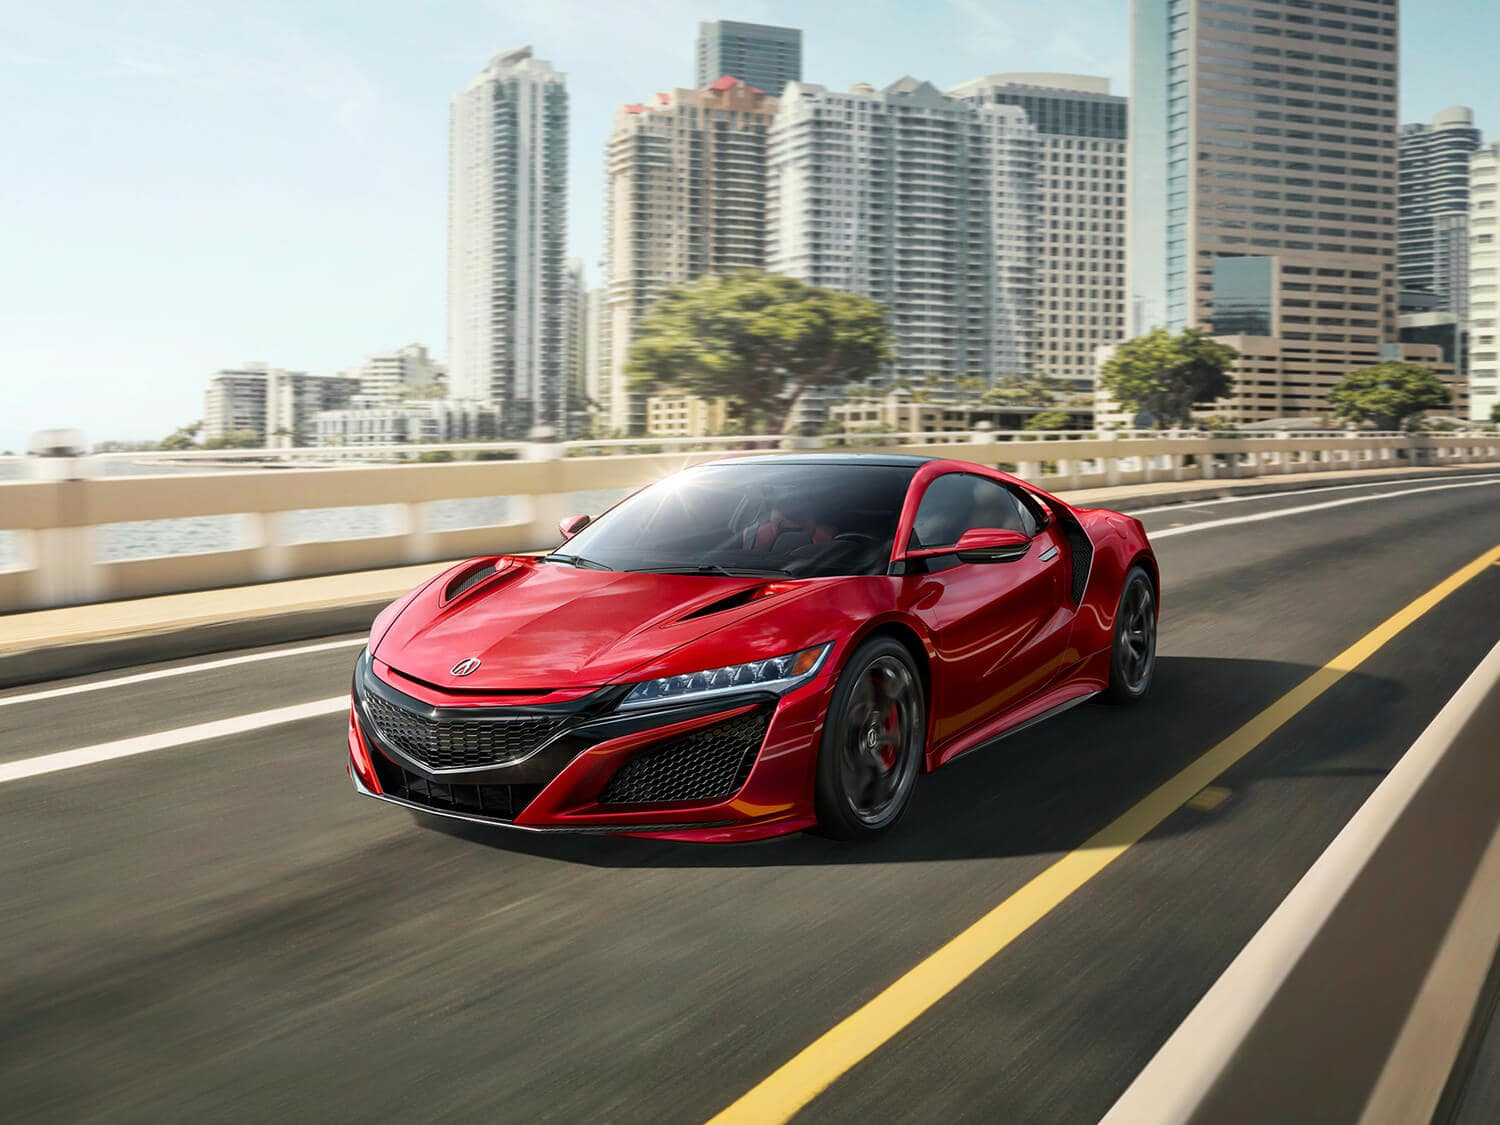 2019 Acura NSX Exterior Front Angle Driver Side City